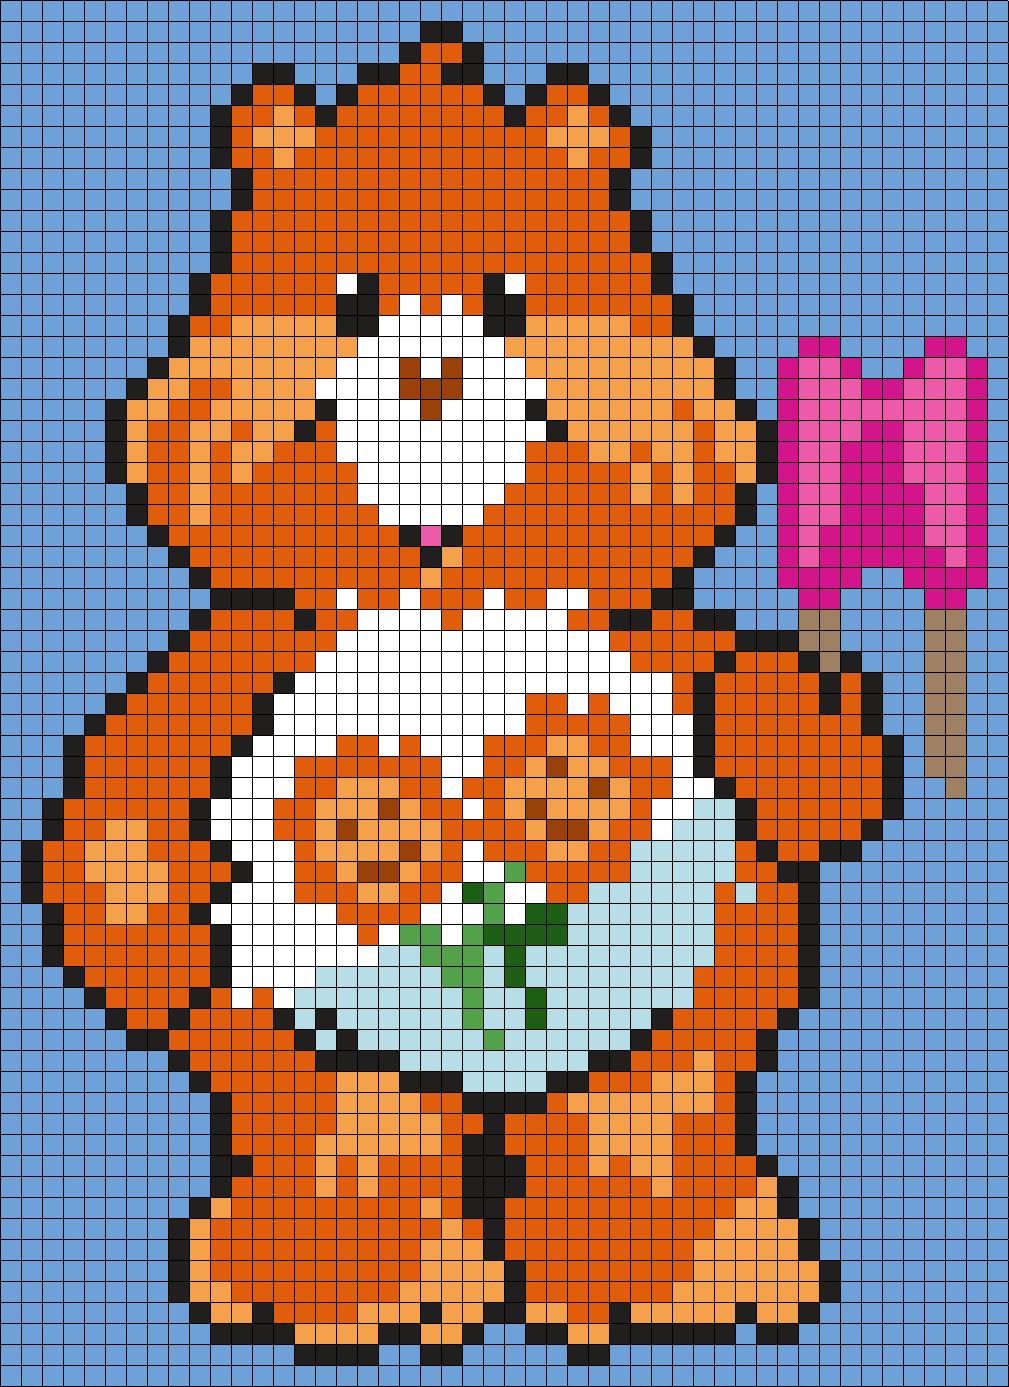 Friend Bear From The Care Bears (Square) Perler Bead Pattern / Bead Sprite